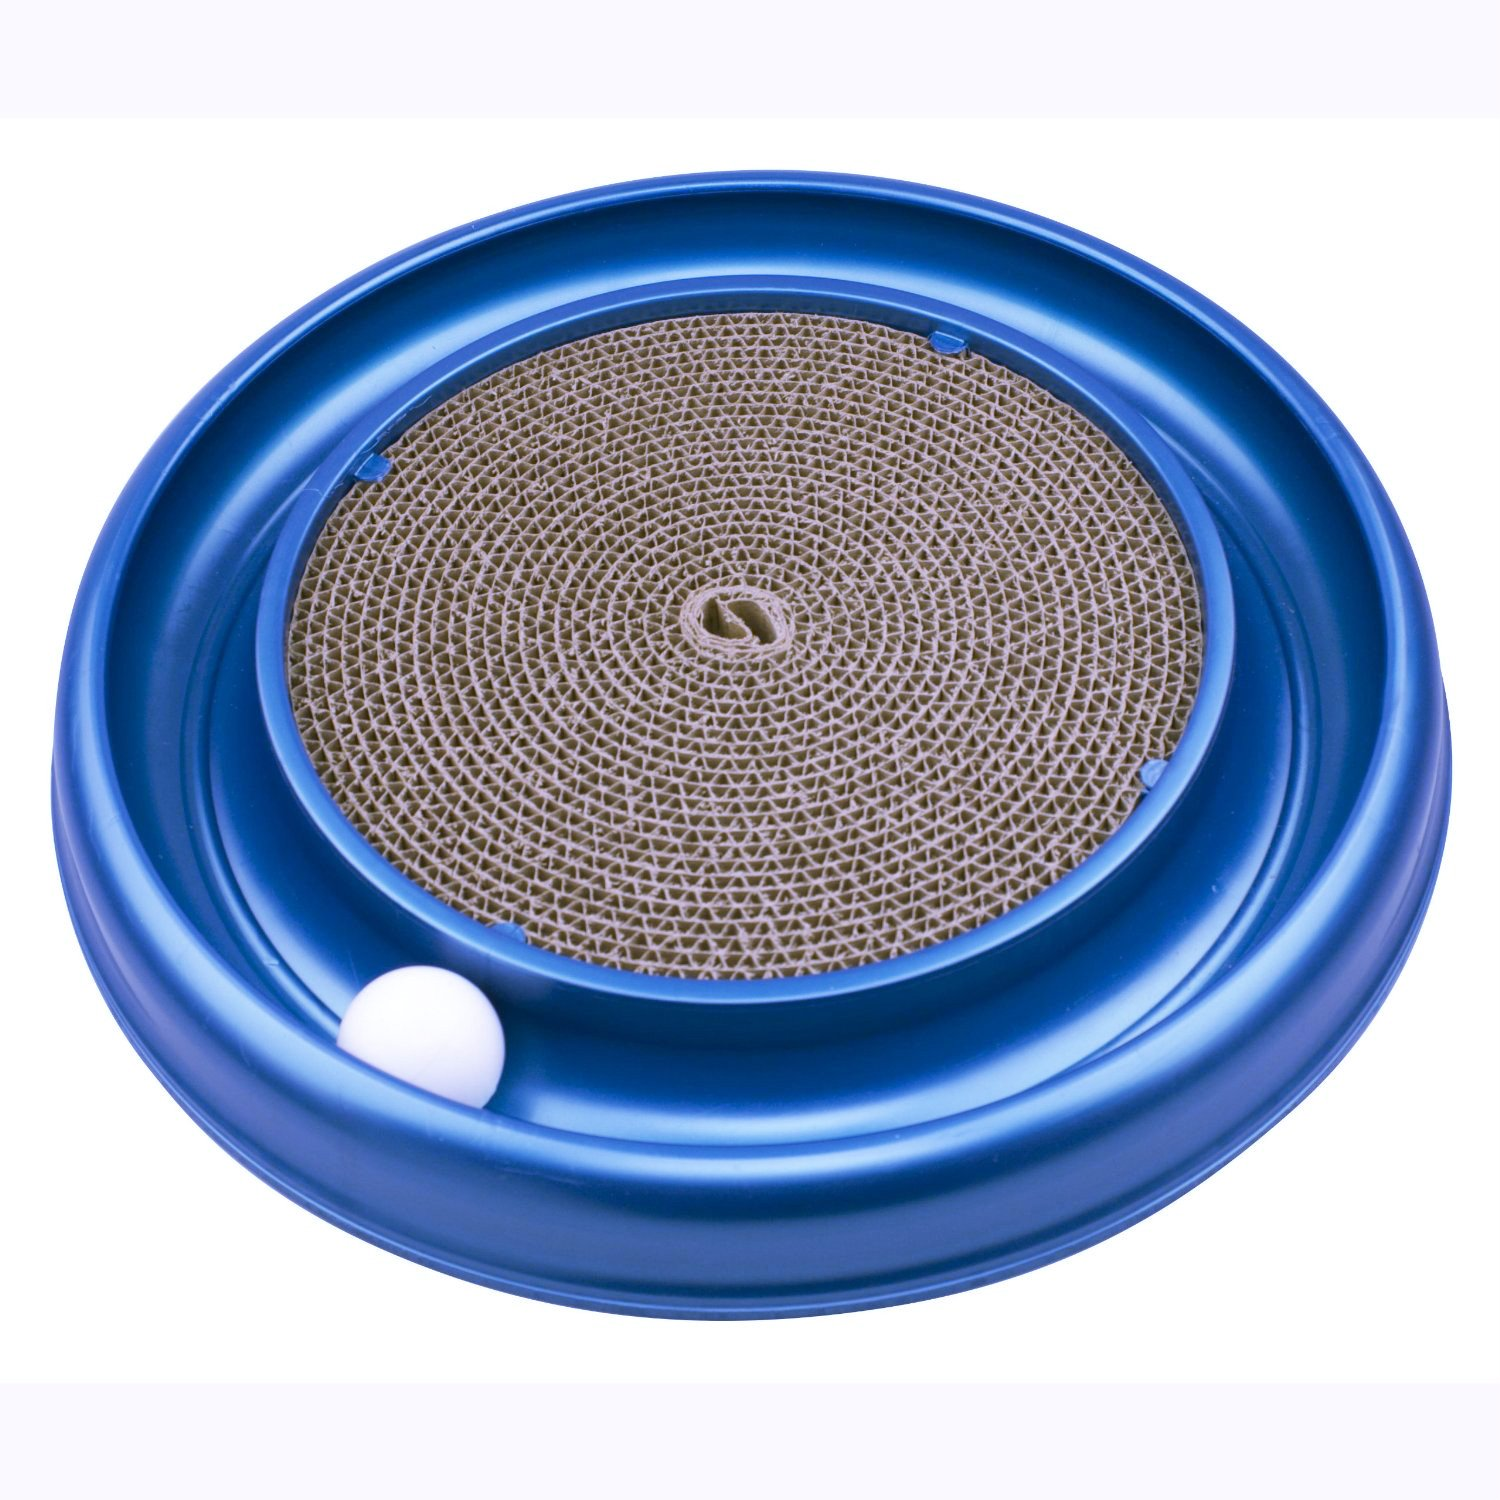 Amazon.com: SUMCOO Eco-Friendly Cat Toys, Catnip Tunnel Track Pet Toys And Cat Cardboard Scratcher Toys: Pet Supplies